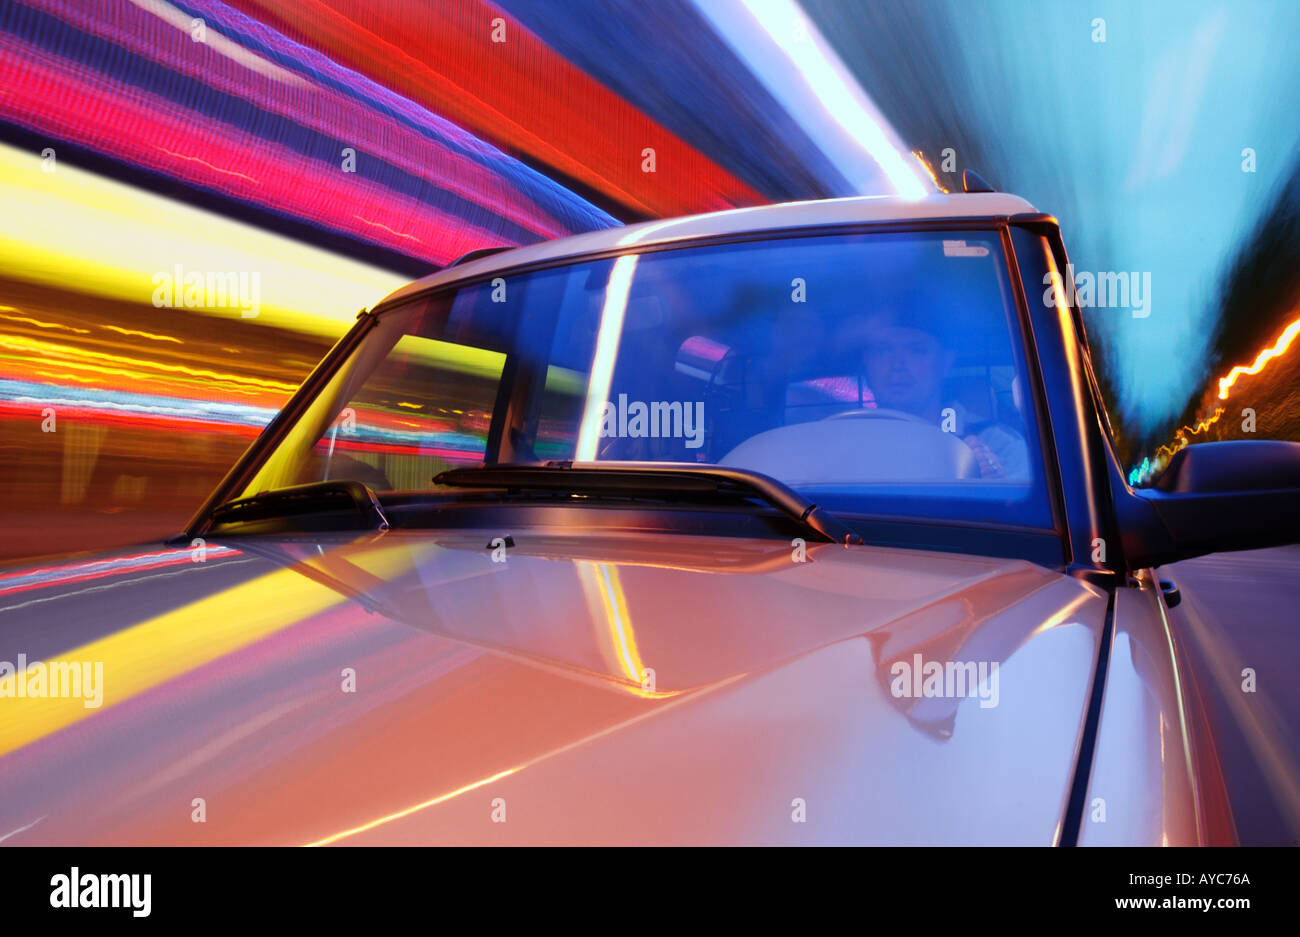 Hood and windshield of suv driving at night with colorful lights blurring in background - Stock Image